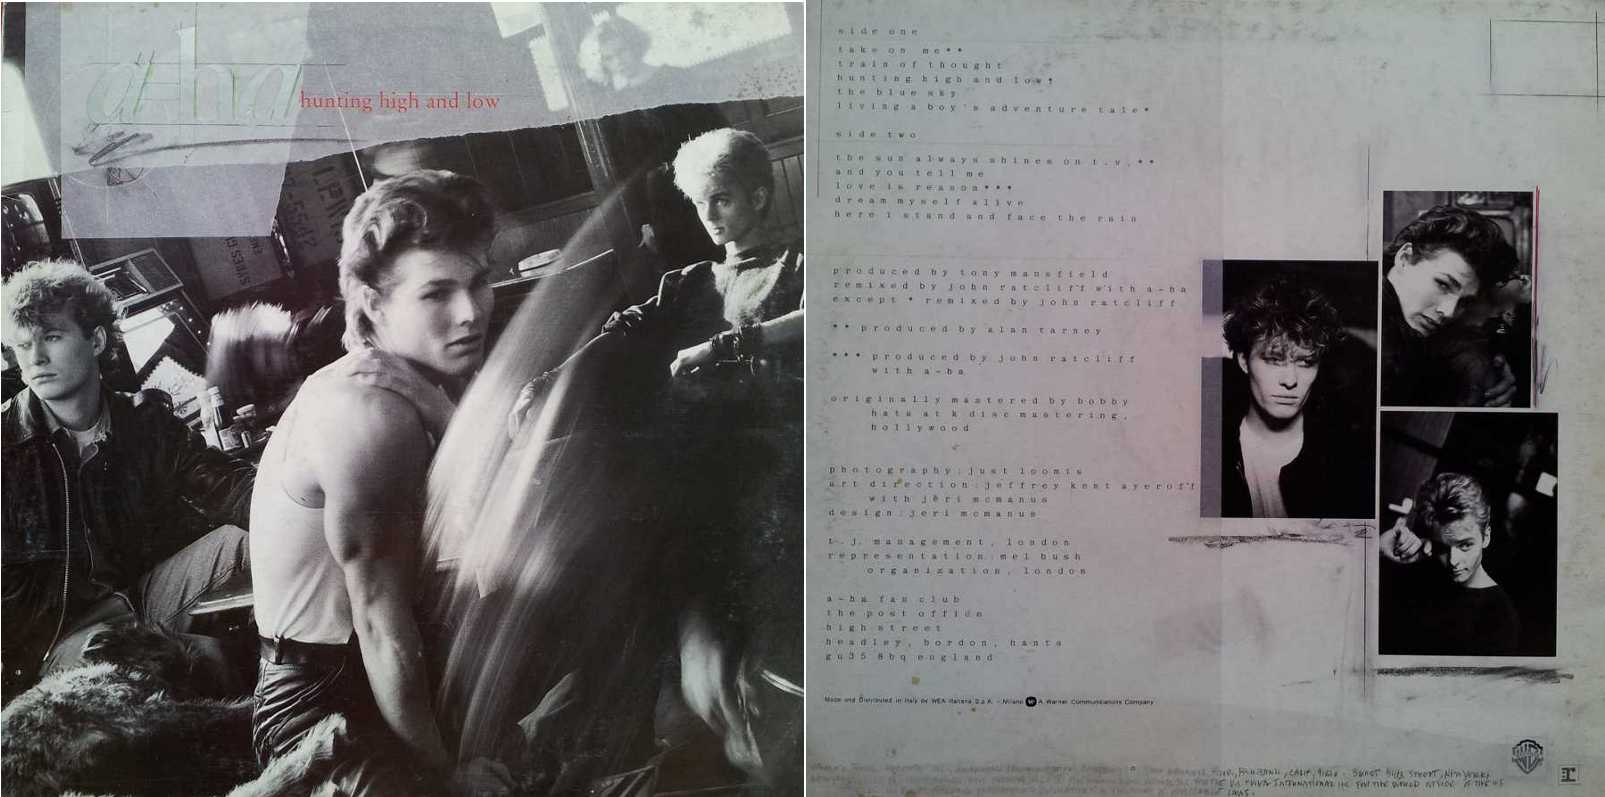 A-HA - Hunting Hight And Low (LP/Vinile 33 giri) USATO BUONO